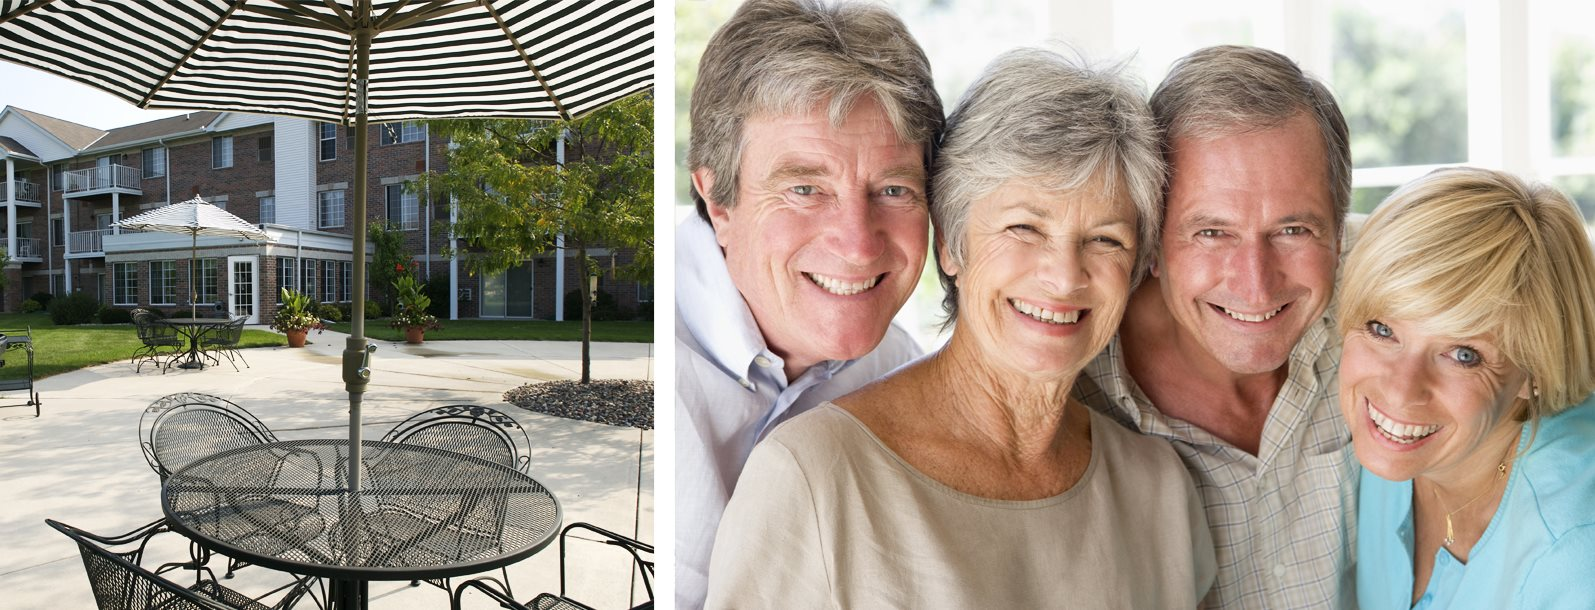 Wonderful Senior Living at Parkway Highlands Apartments & Townhomes 55+, Green Bay, WI, 54302